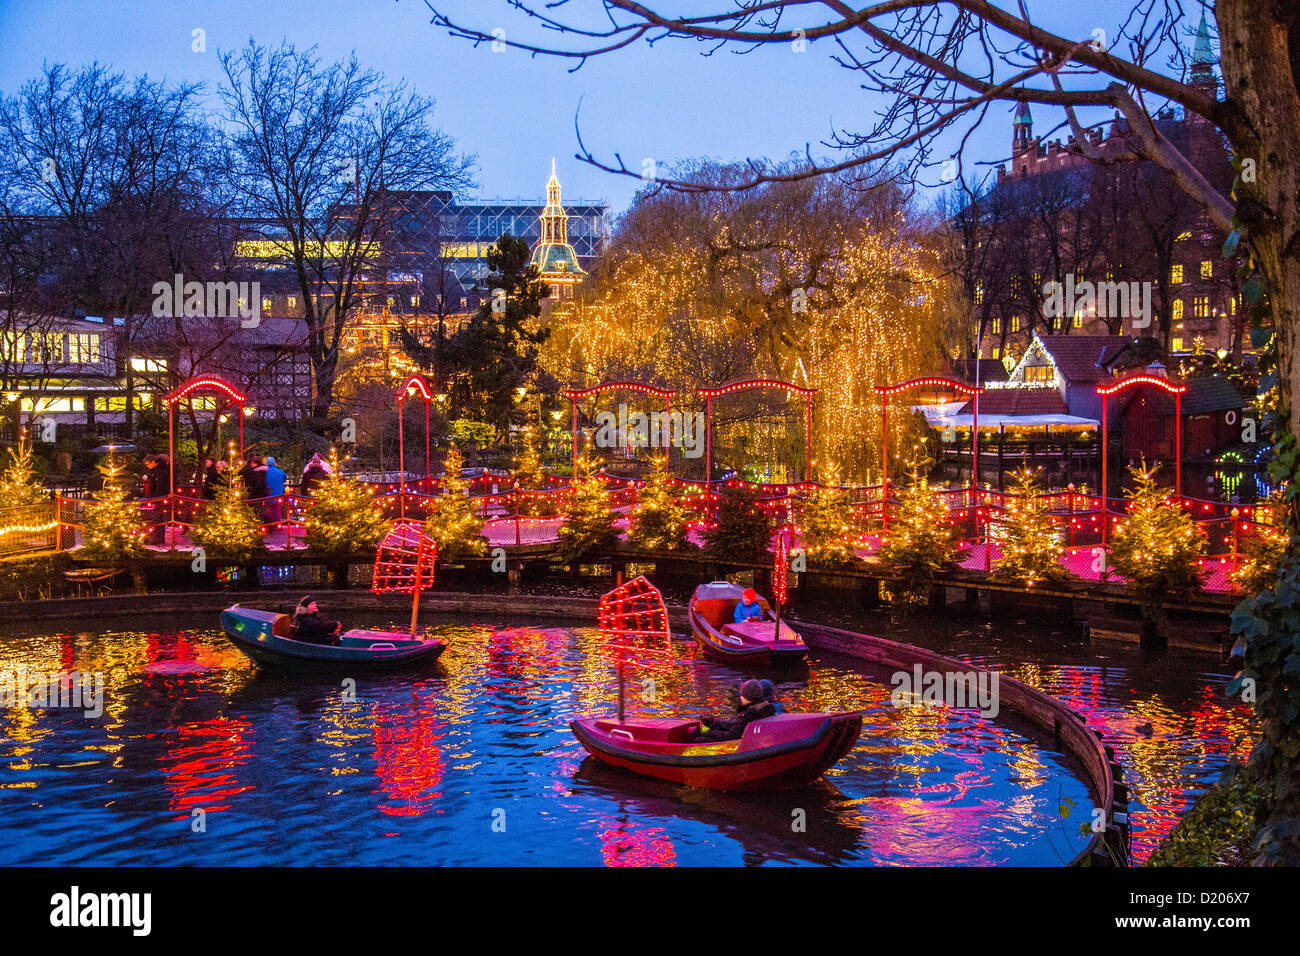 Tivoli amusement park fun park city center christmas for Amusement park decoration ideas